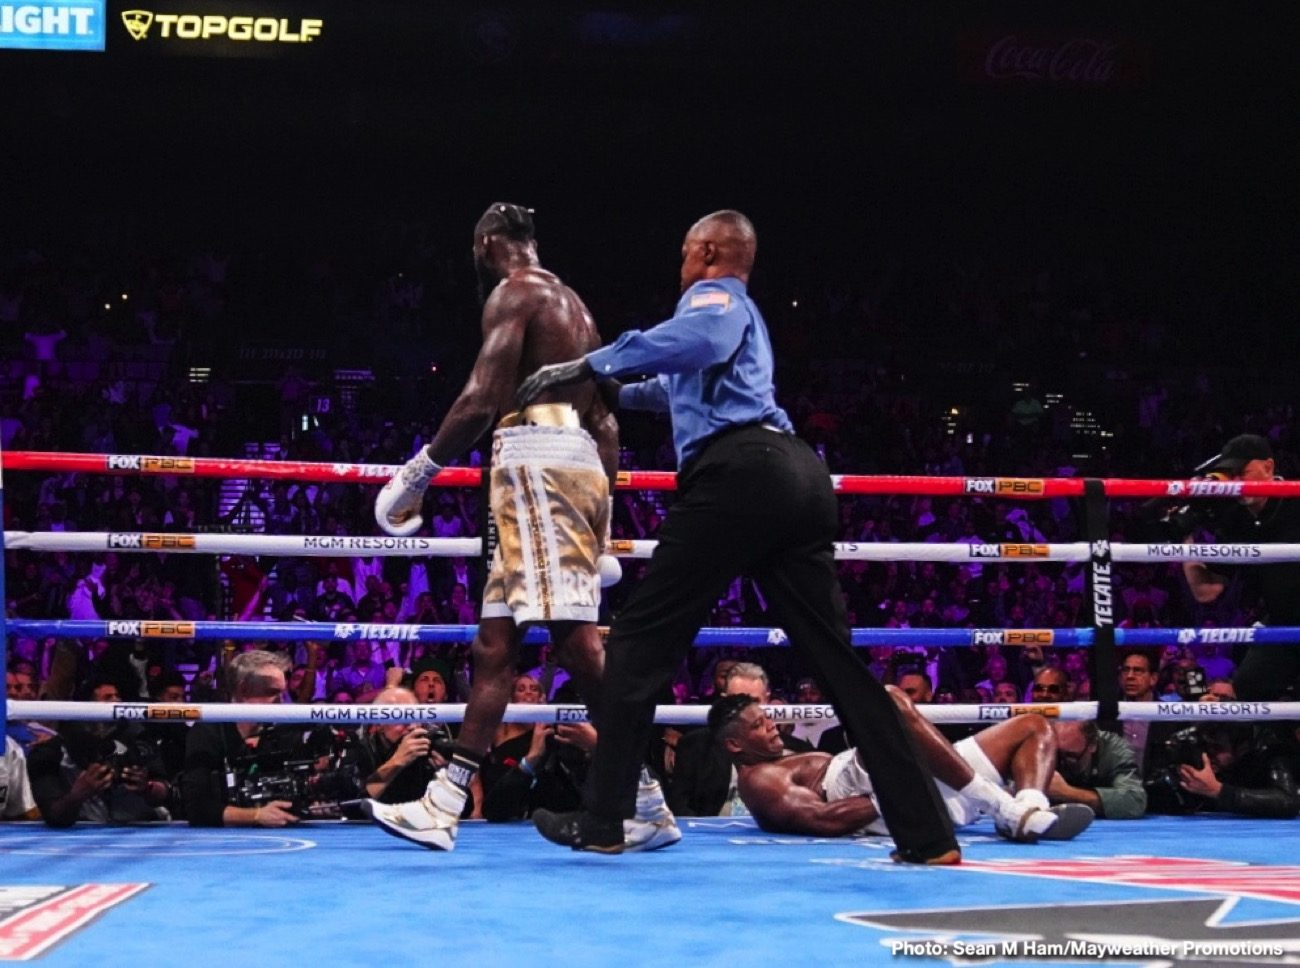 Deontay Wilder Luis Ortiz Tyson Fury Boxing News Boxing Results Top Stories Boxing